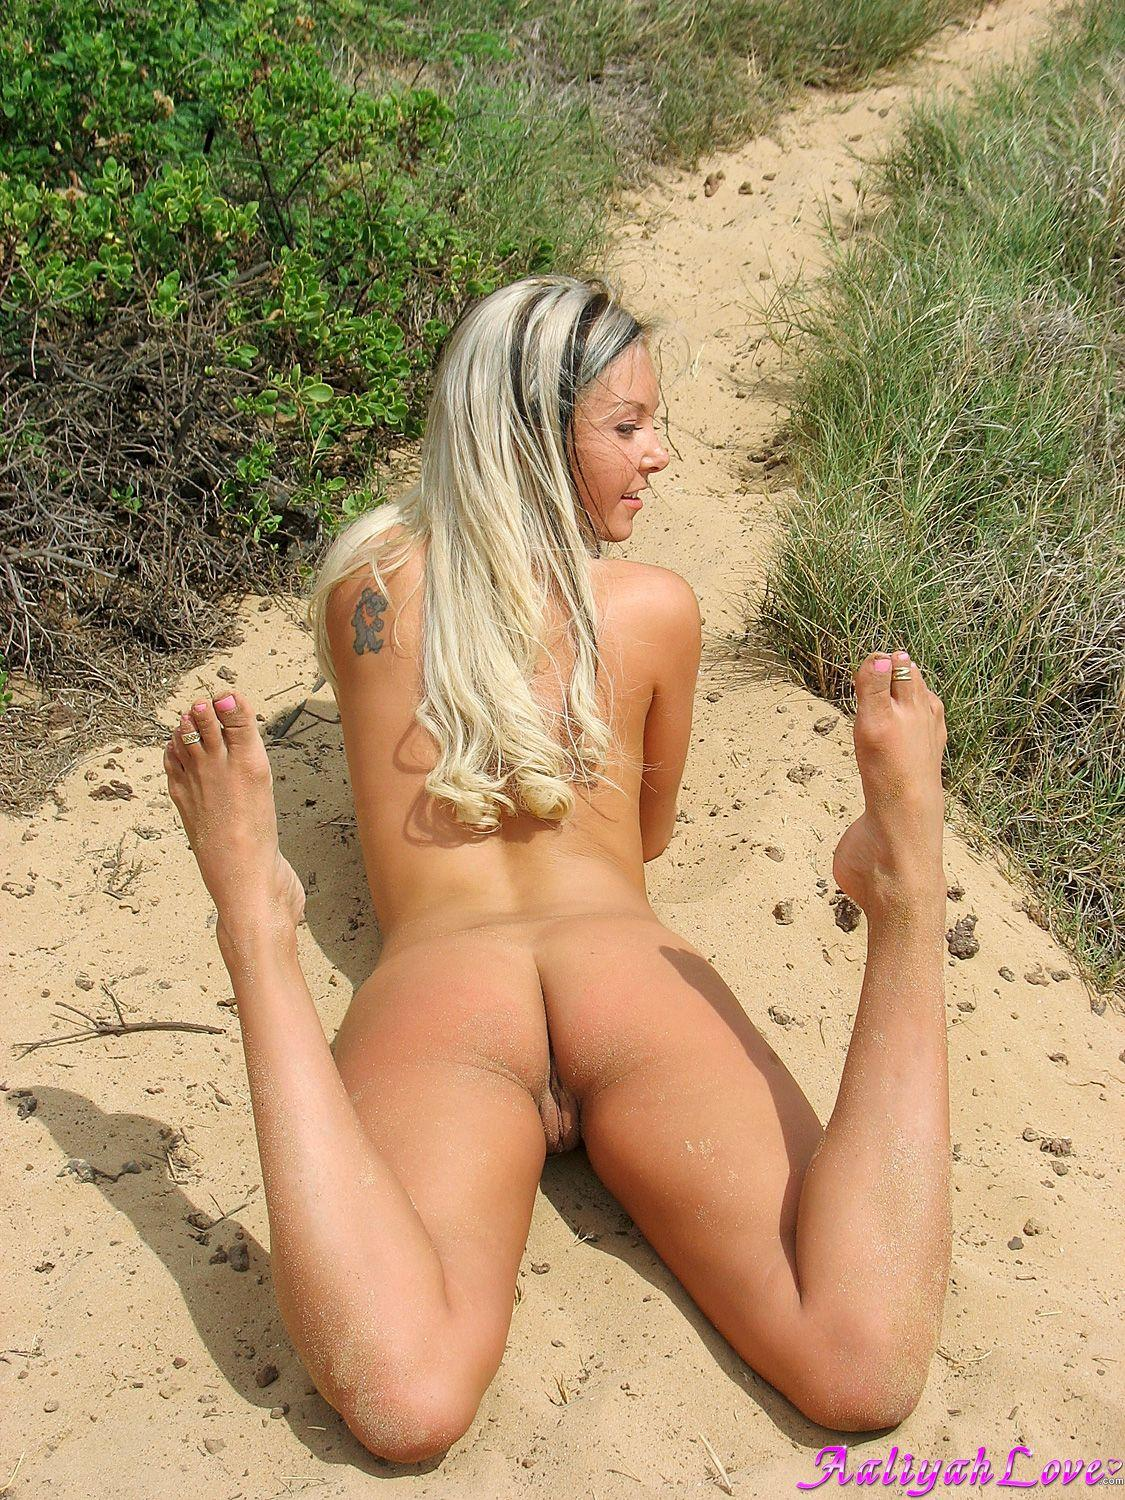 Pictures Of Aaliyah Love Ready To Fuck On A Beach  Coed -4589